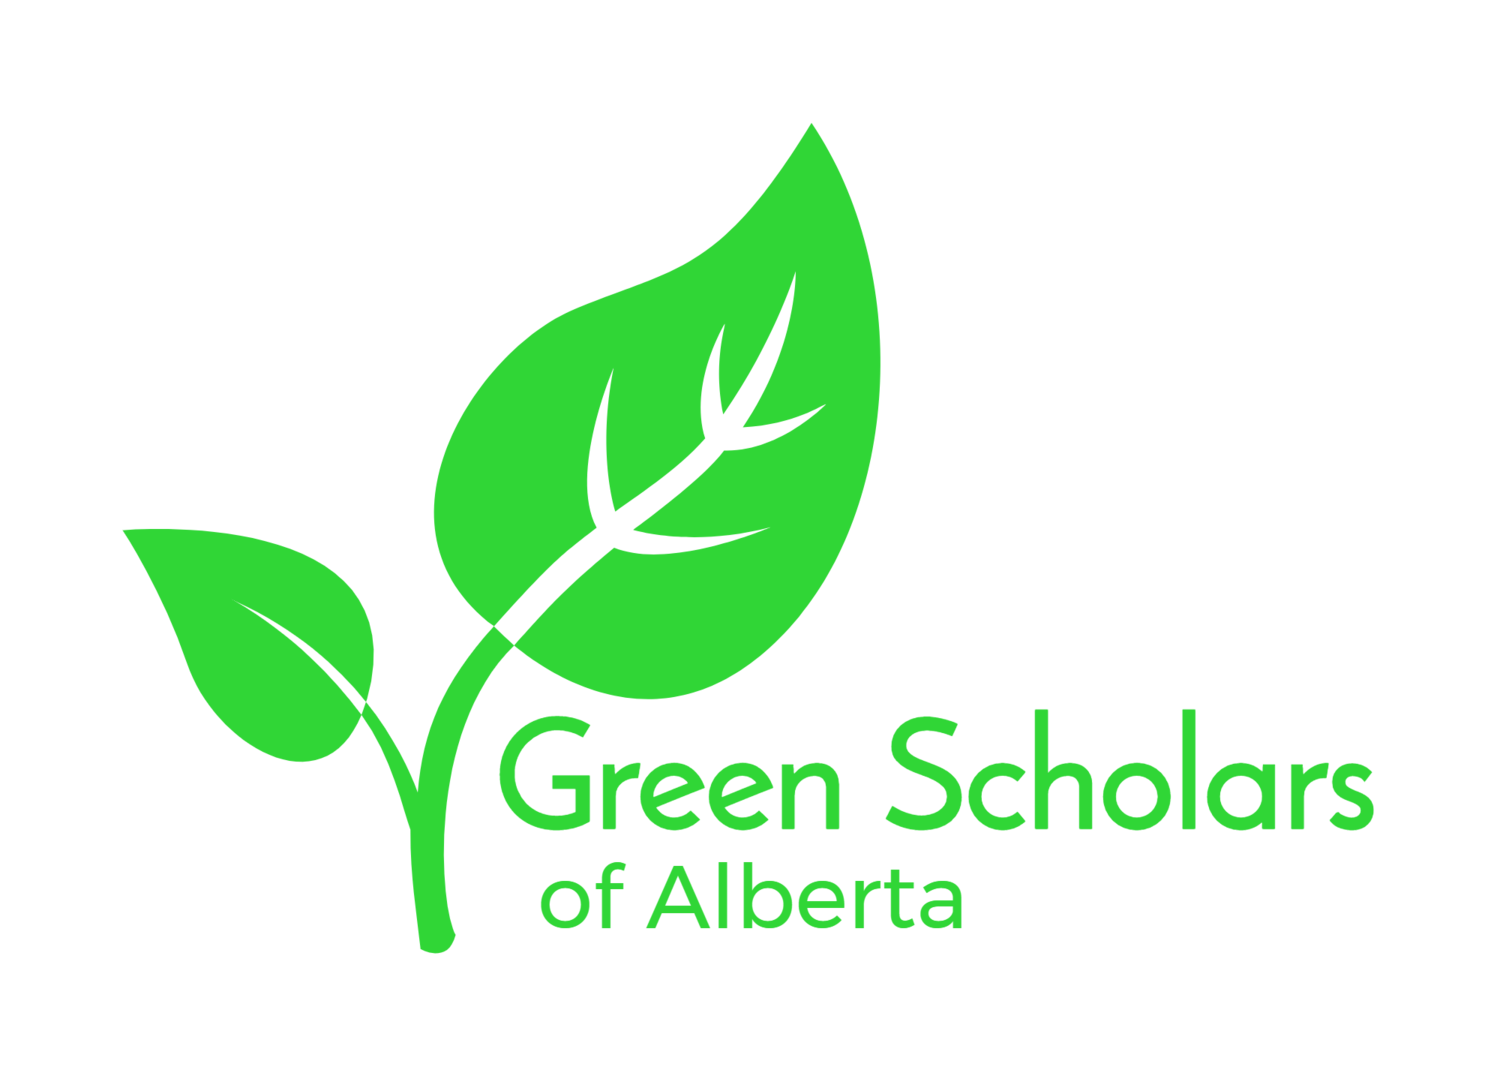 Green Scholars of Alberta